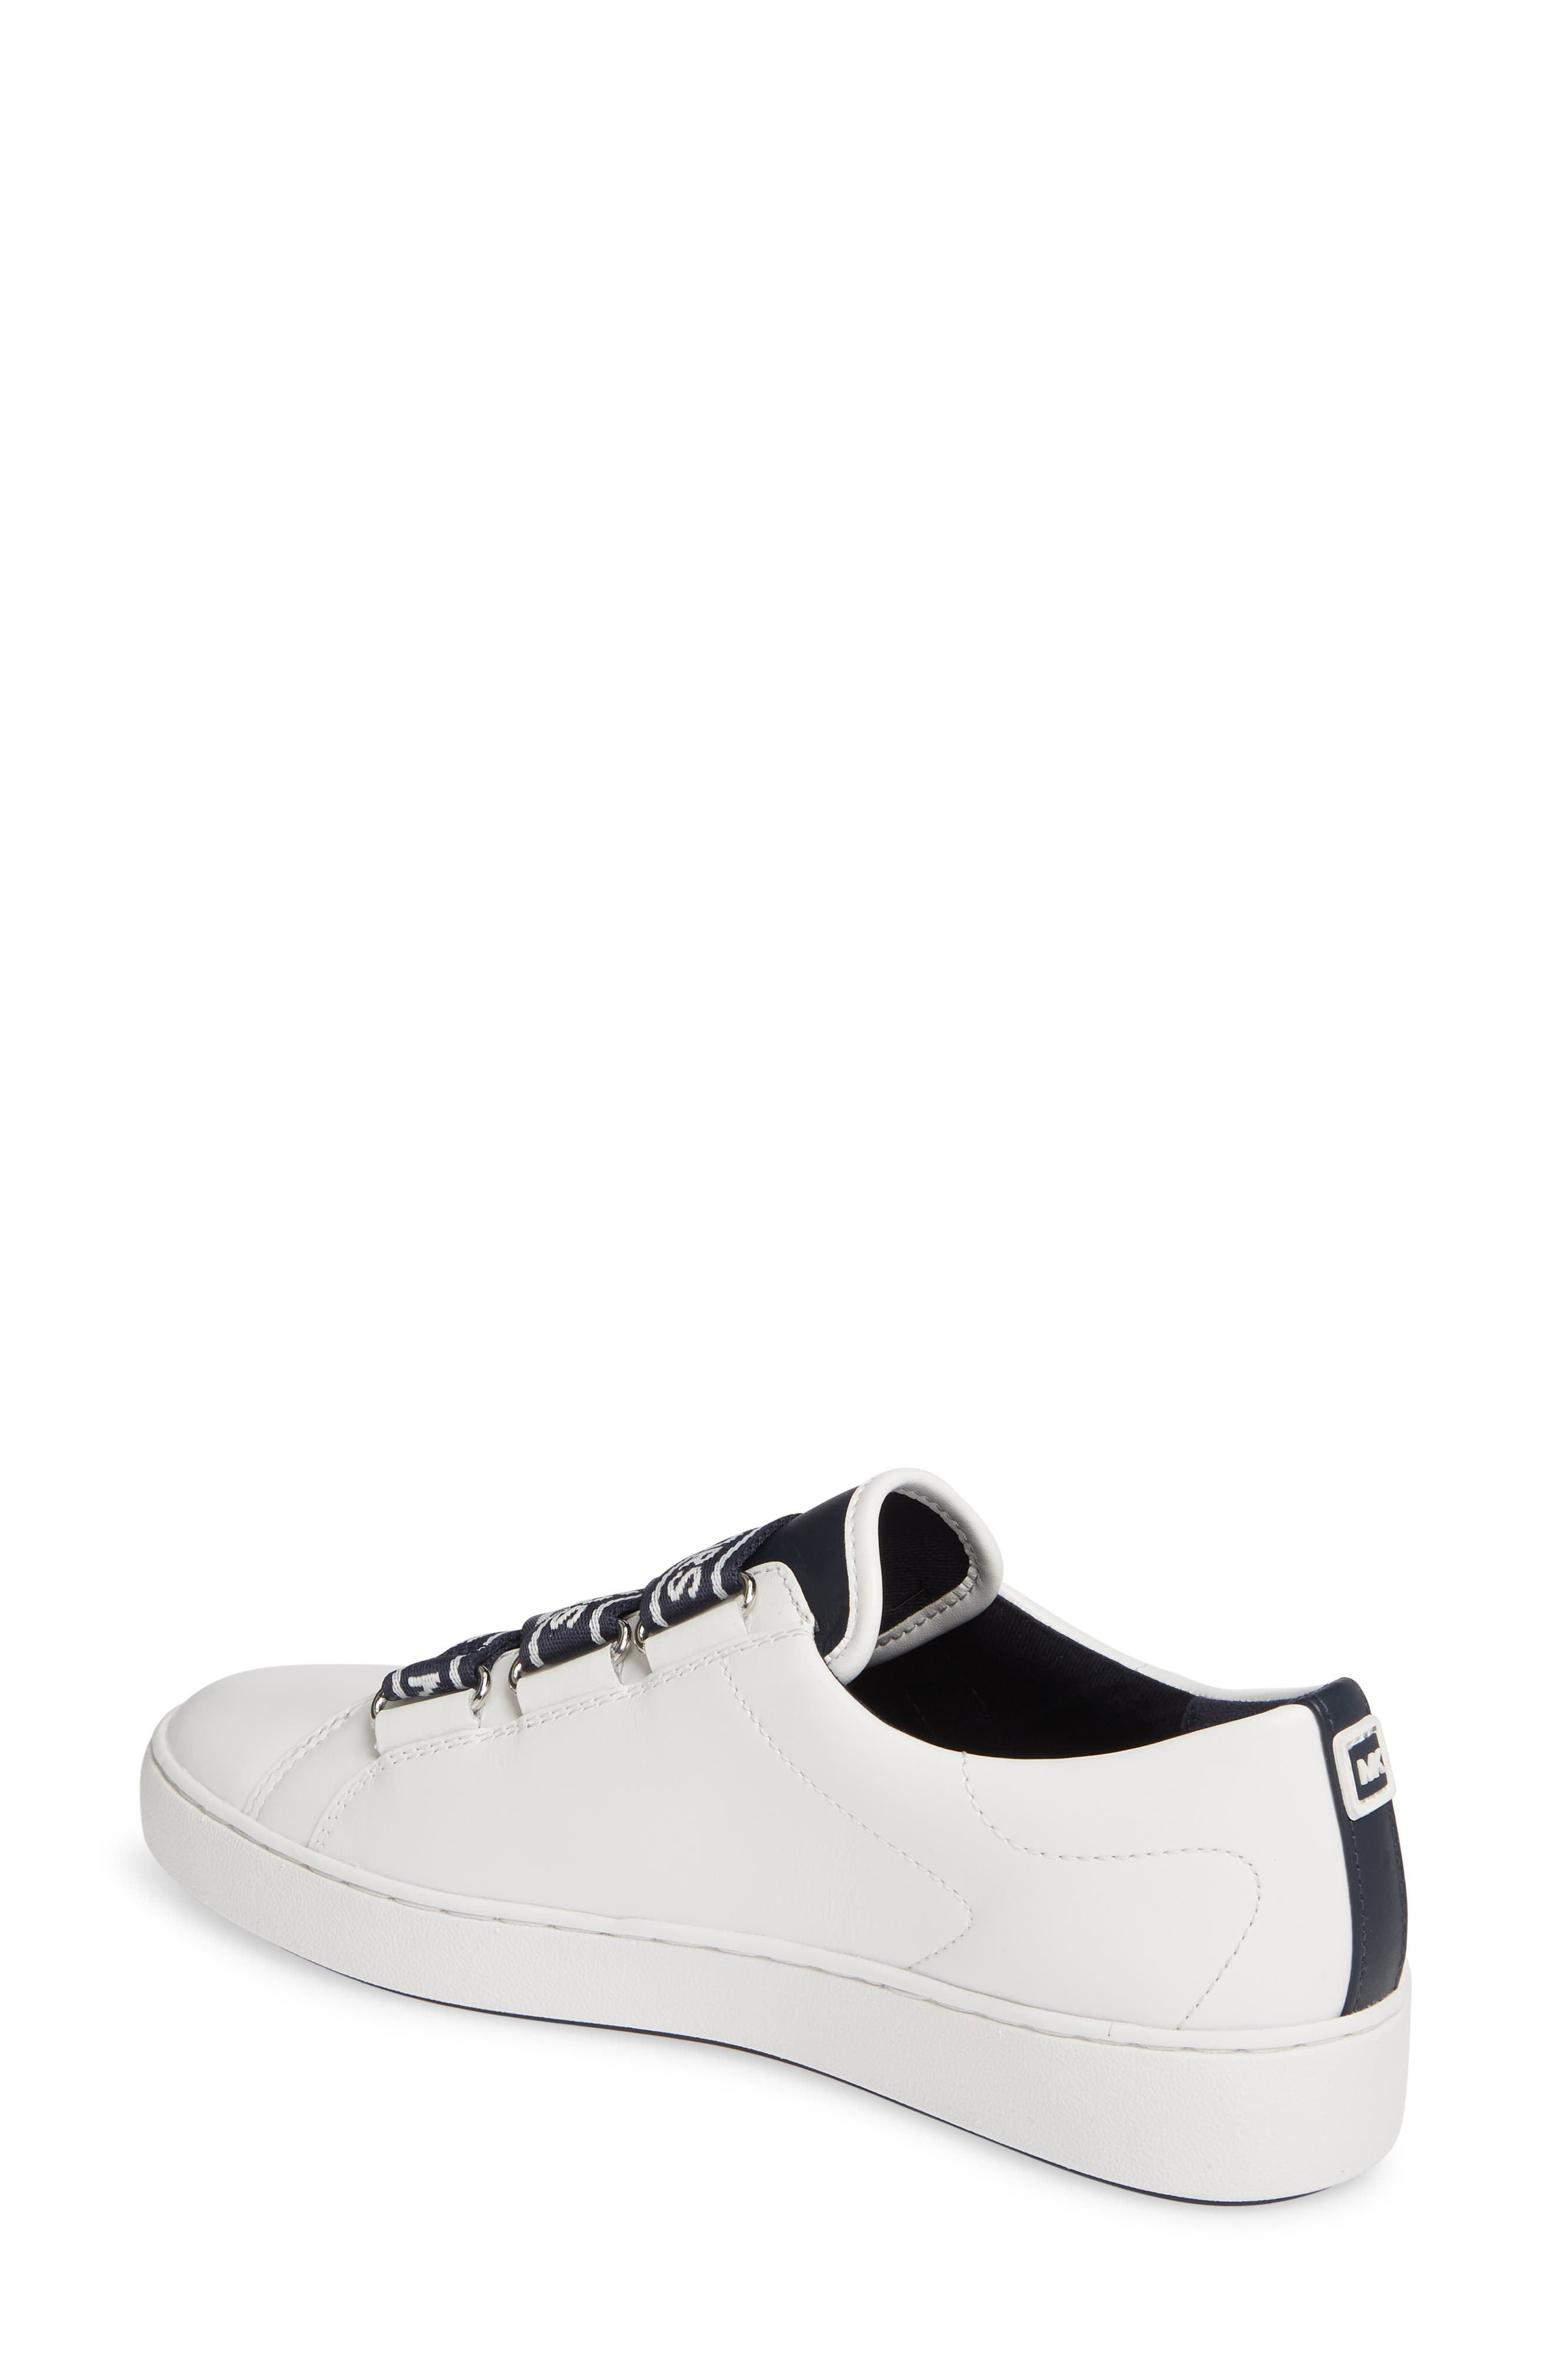 MICHAEL MICHAEL KORS, Casey Low Top Sneaker, Alternate thumbnail 2, color, ADMIRAL/ WHITE